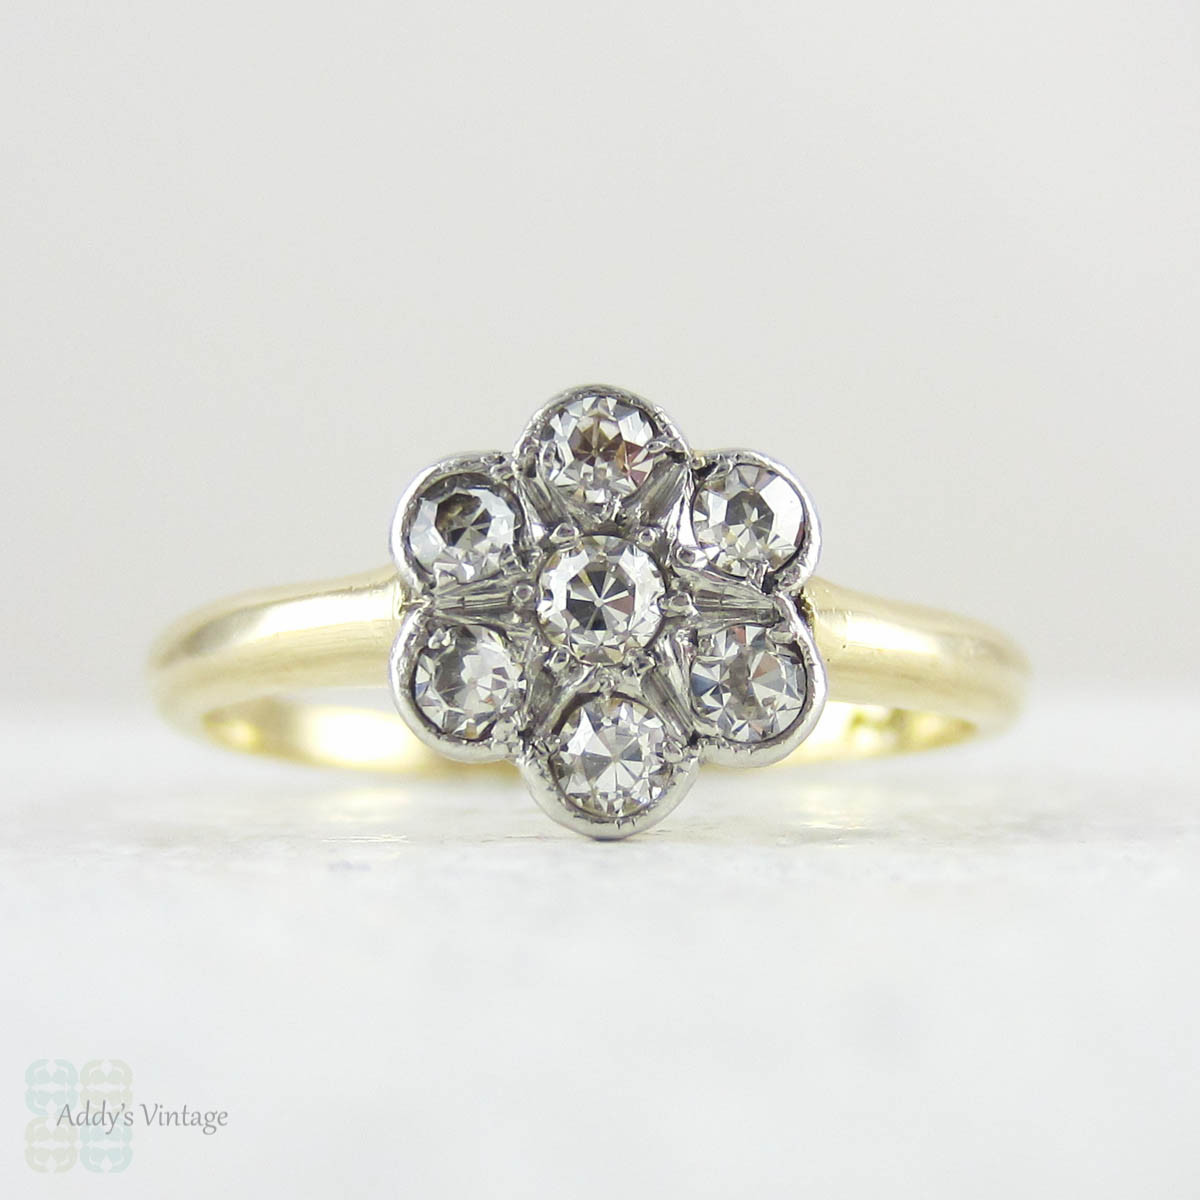 catalogue engagement daisy thumbnail ring rings